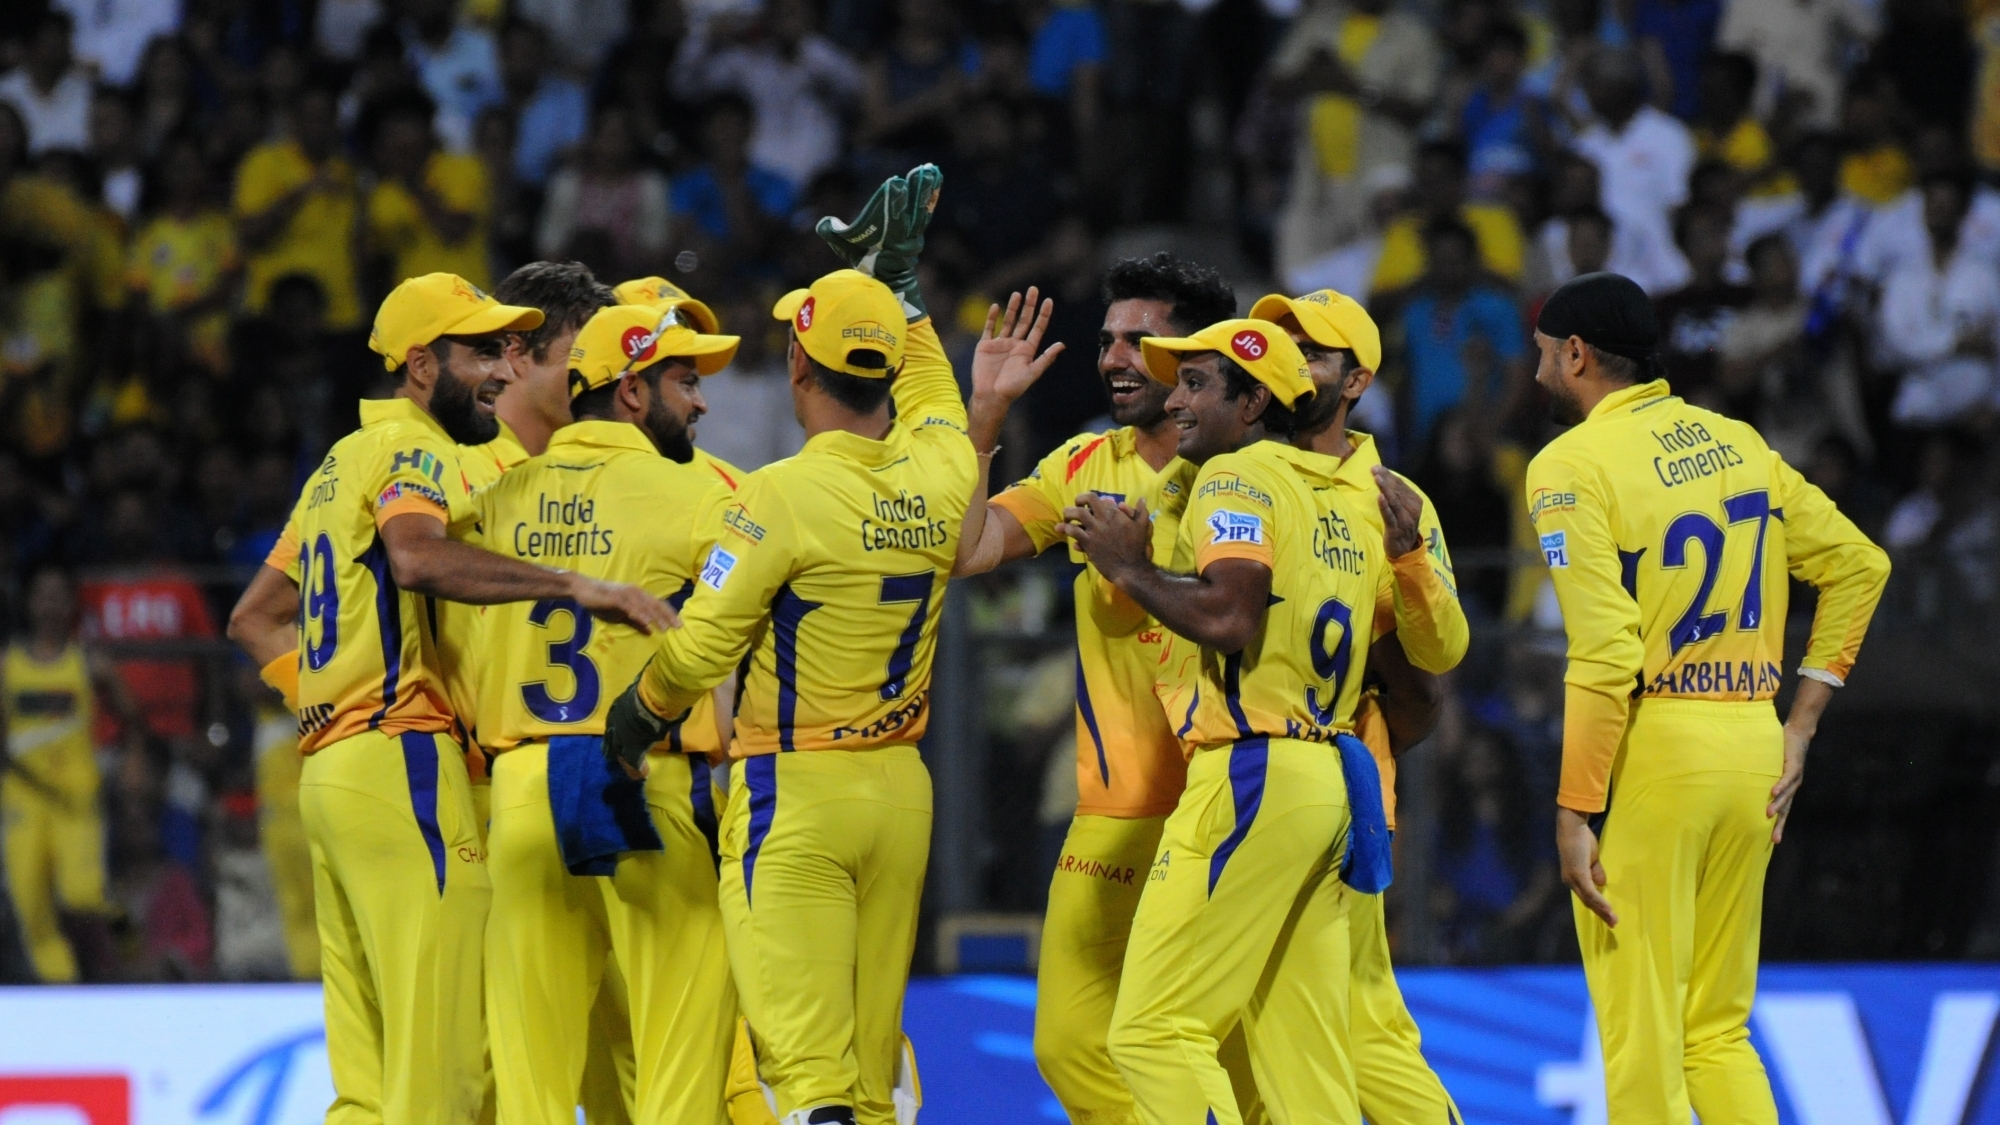 IPL 2018: Match 17, CSK vs RR: Twitter rejoices CSK's first win at Pune as Rajasthan slump further